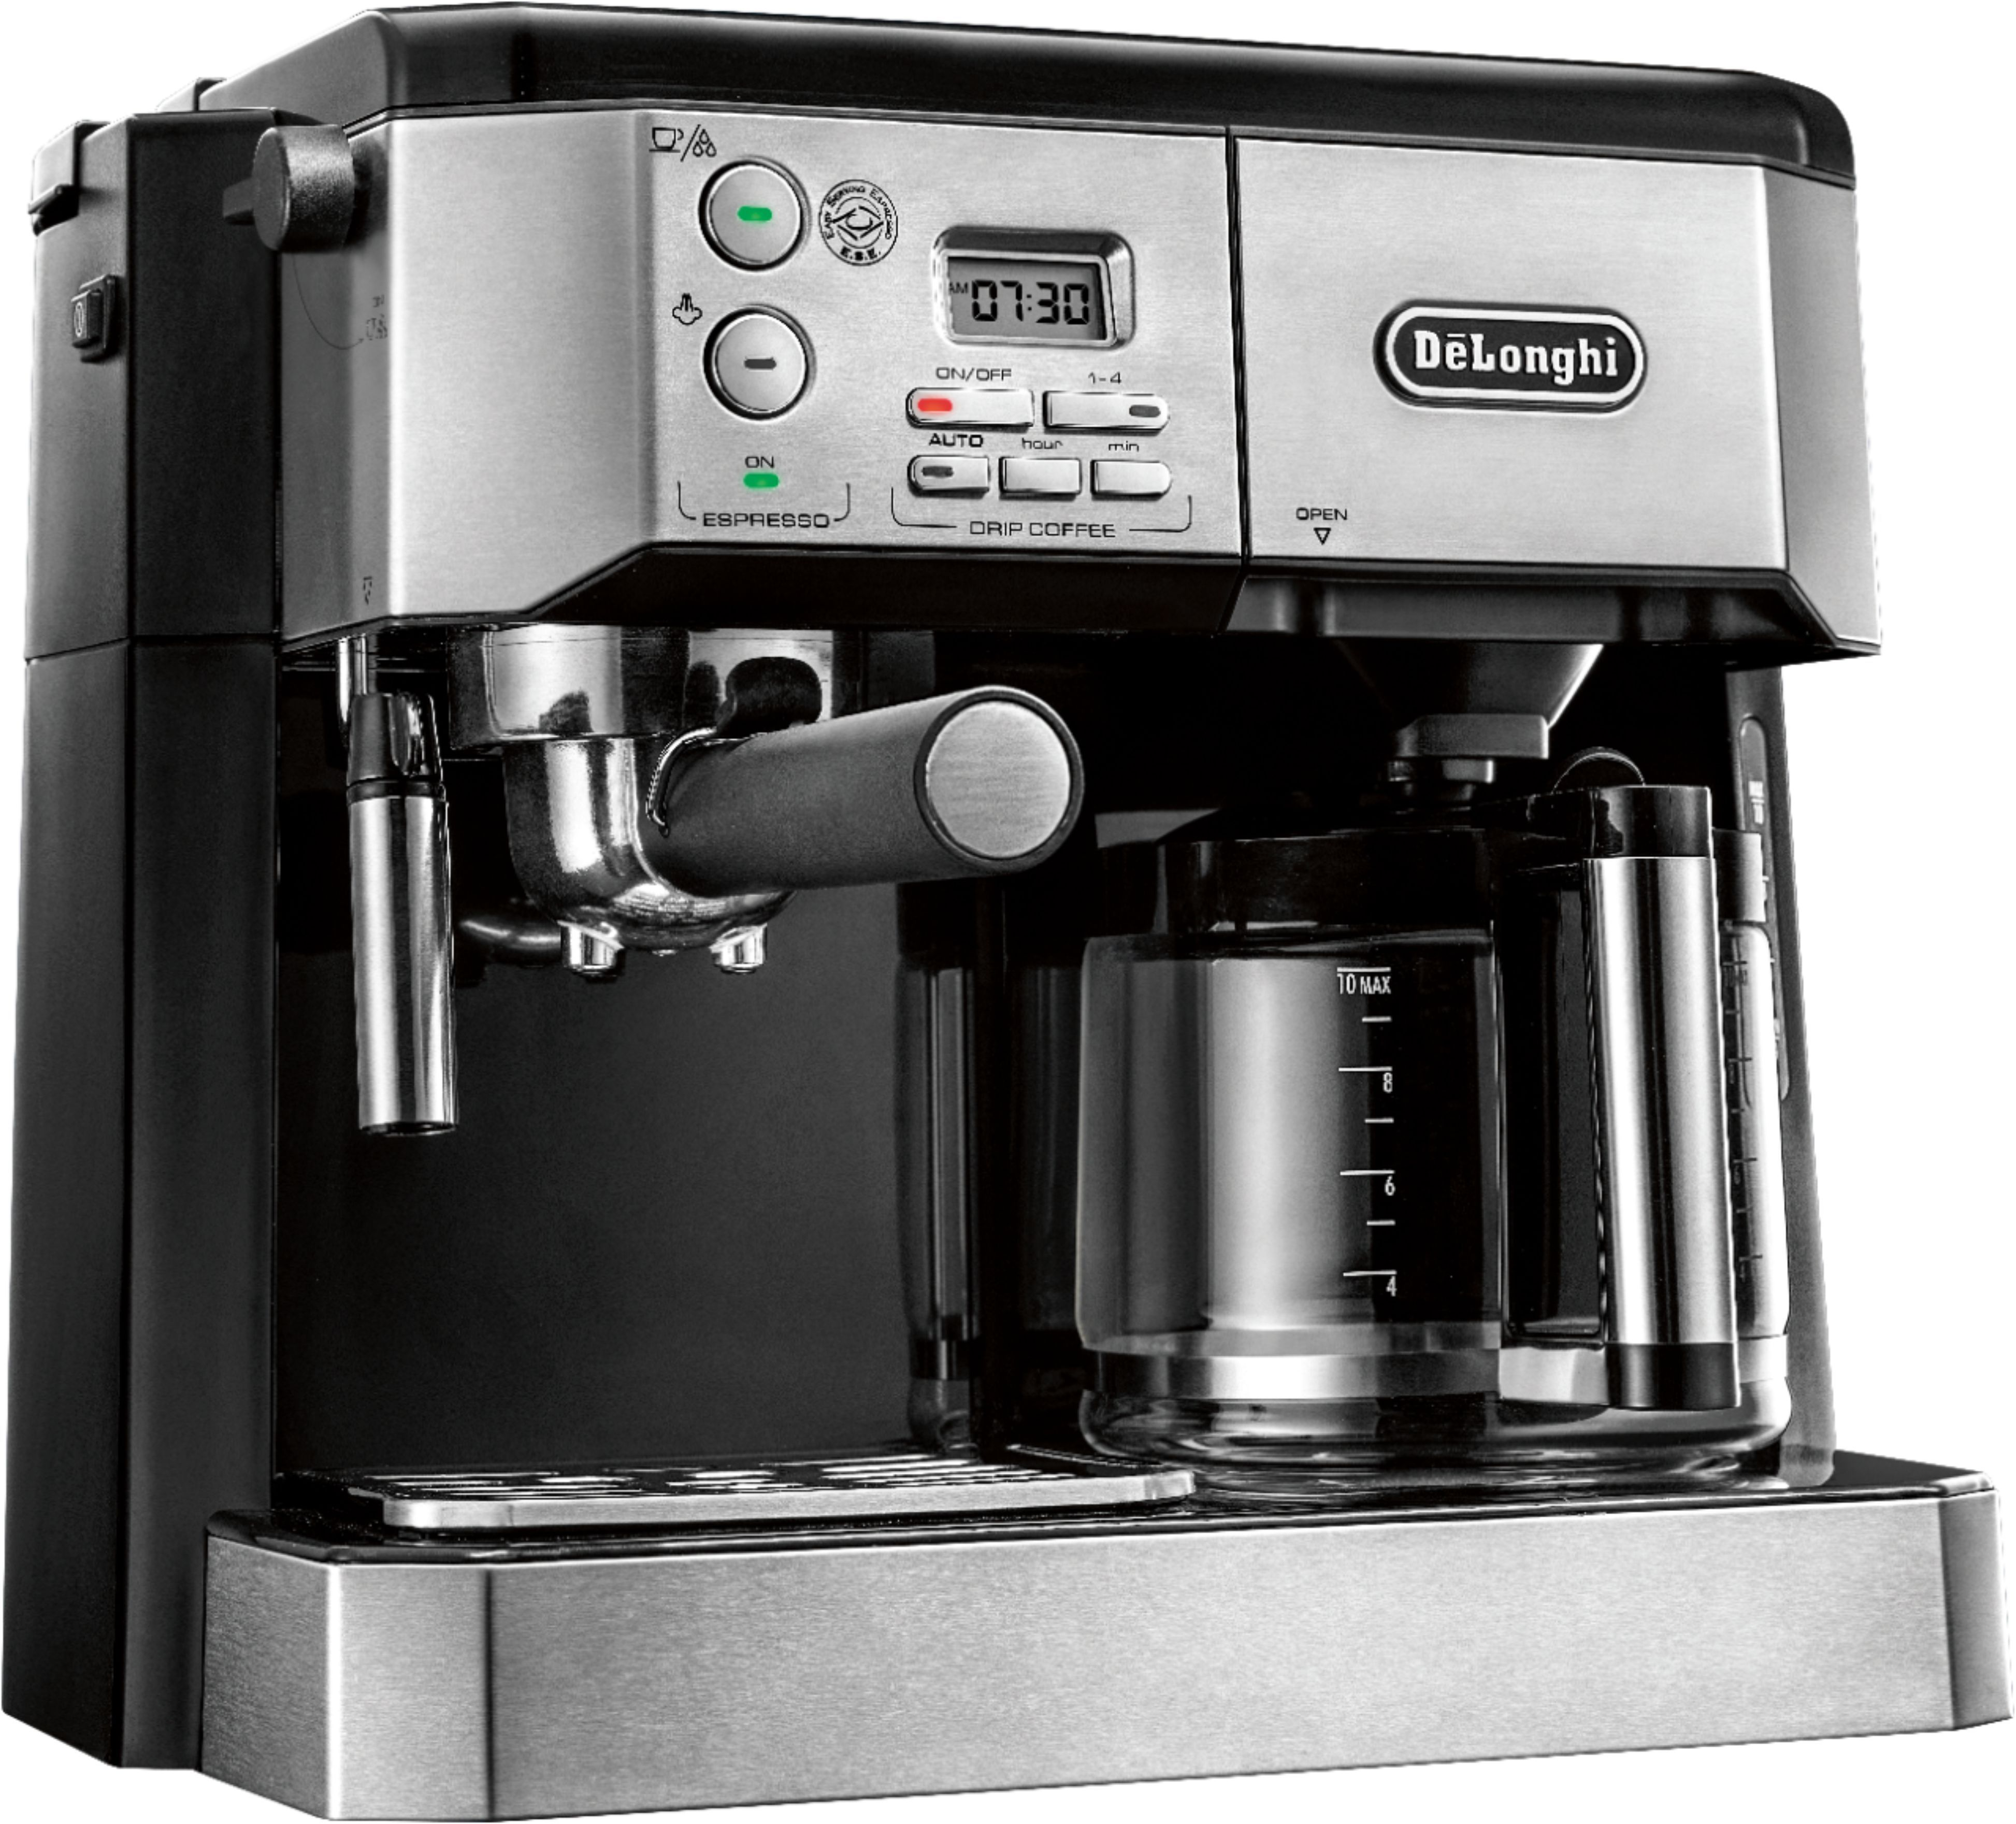 Magnifica S Makes Coffee Beverages In Just One Touch From Freshly Ground Coffee Beans And Brews 2 Espresso Cups Automatic Coffee Machine Coffee Coffee Machine